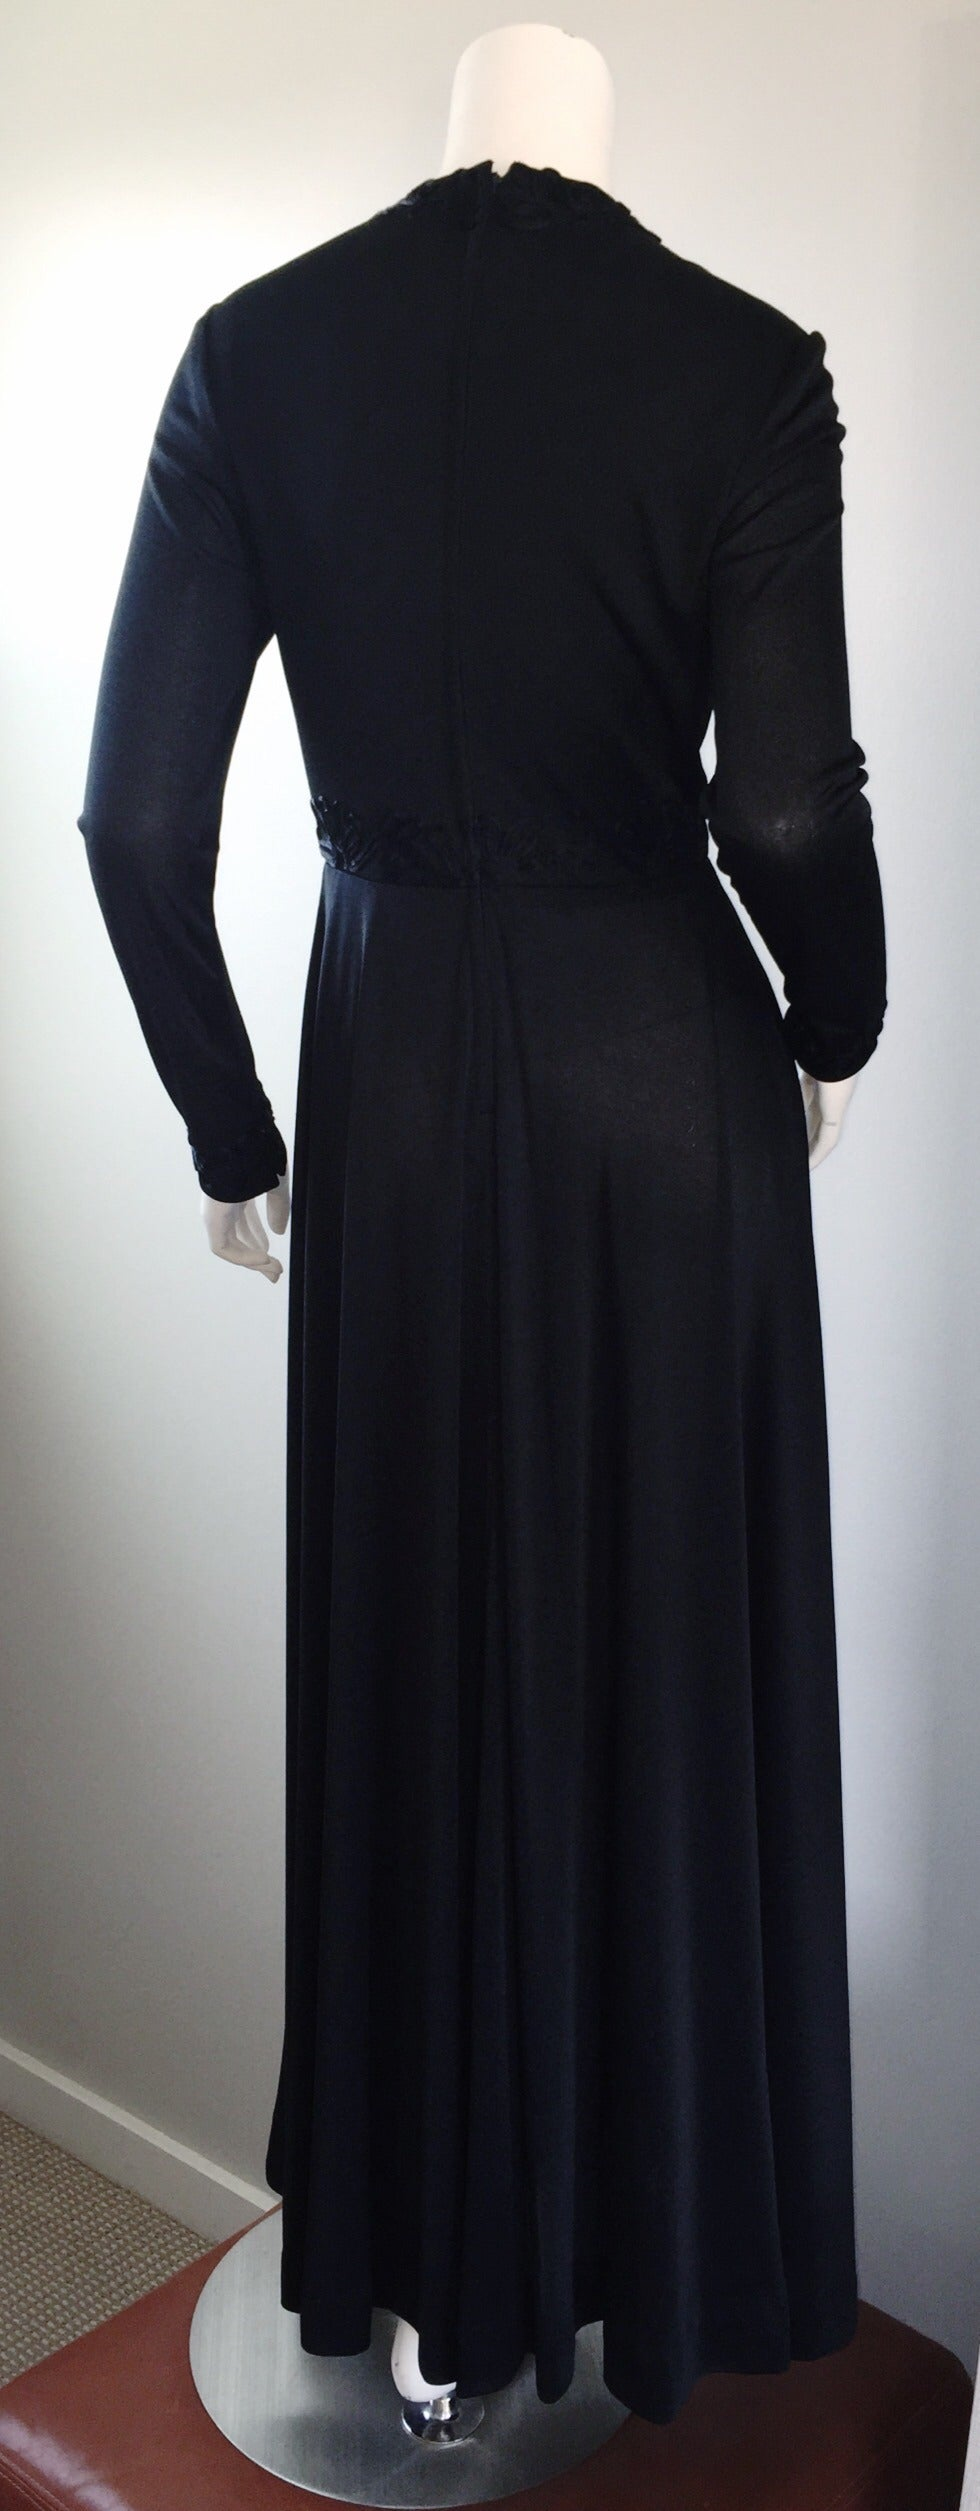 Vintage Jack Bryan Black Jersey Maxi Dress w/ Intricate Embroidery 1970s 70s 5